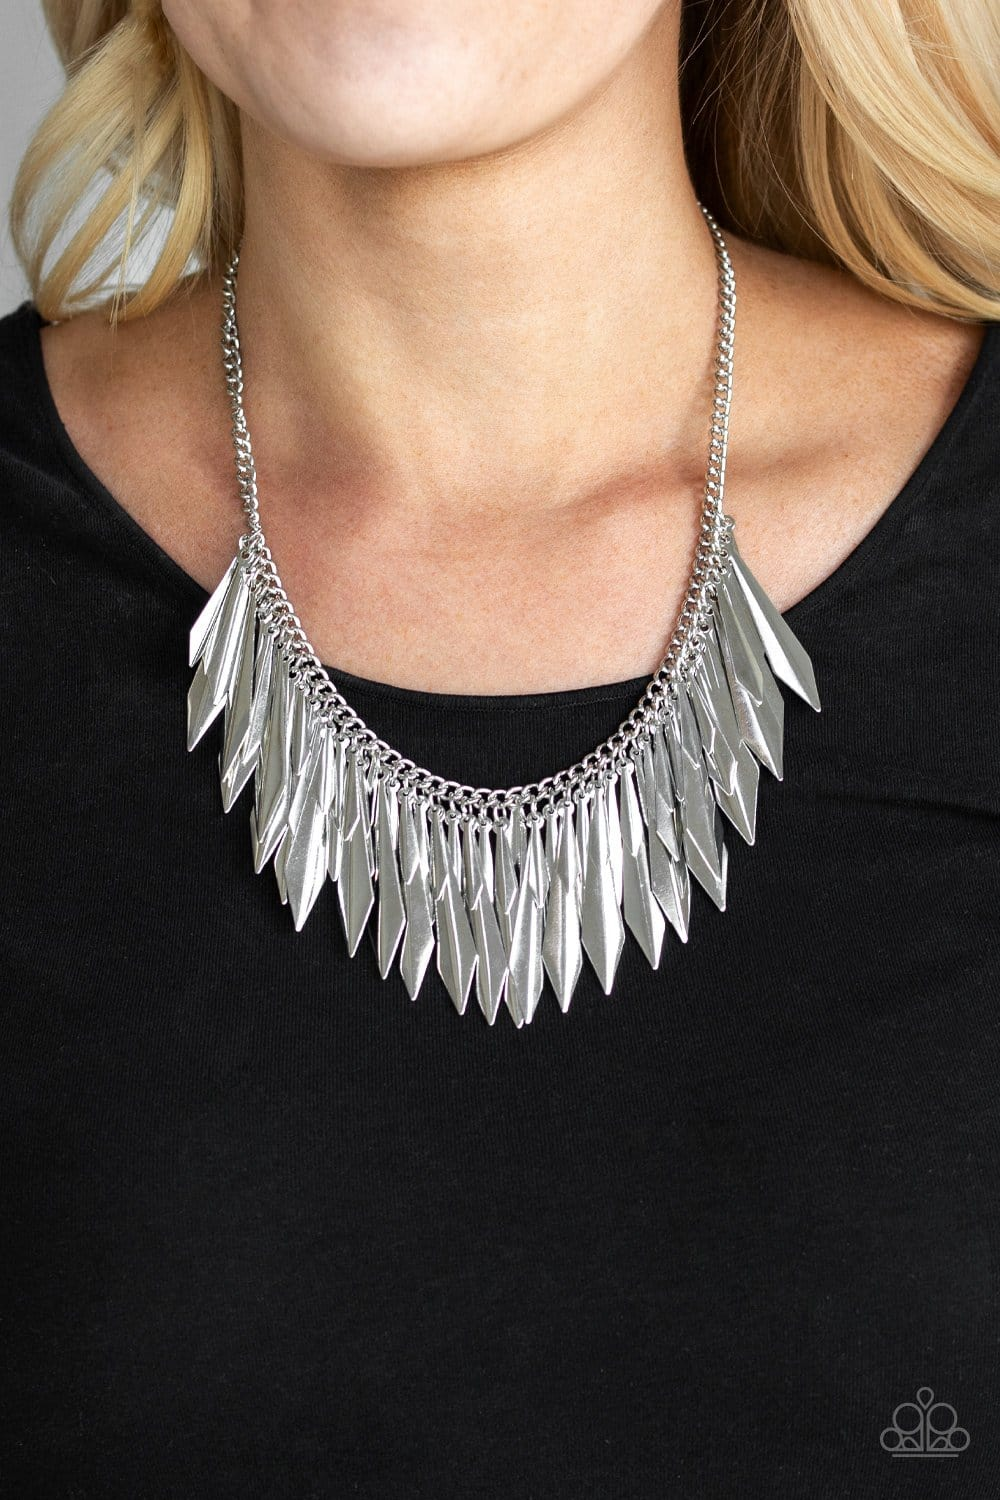 The Thrill-Seeker - Silver: Paparazzi Accessories - Jewels N' Thingz Boutique